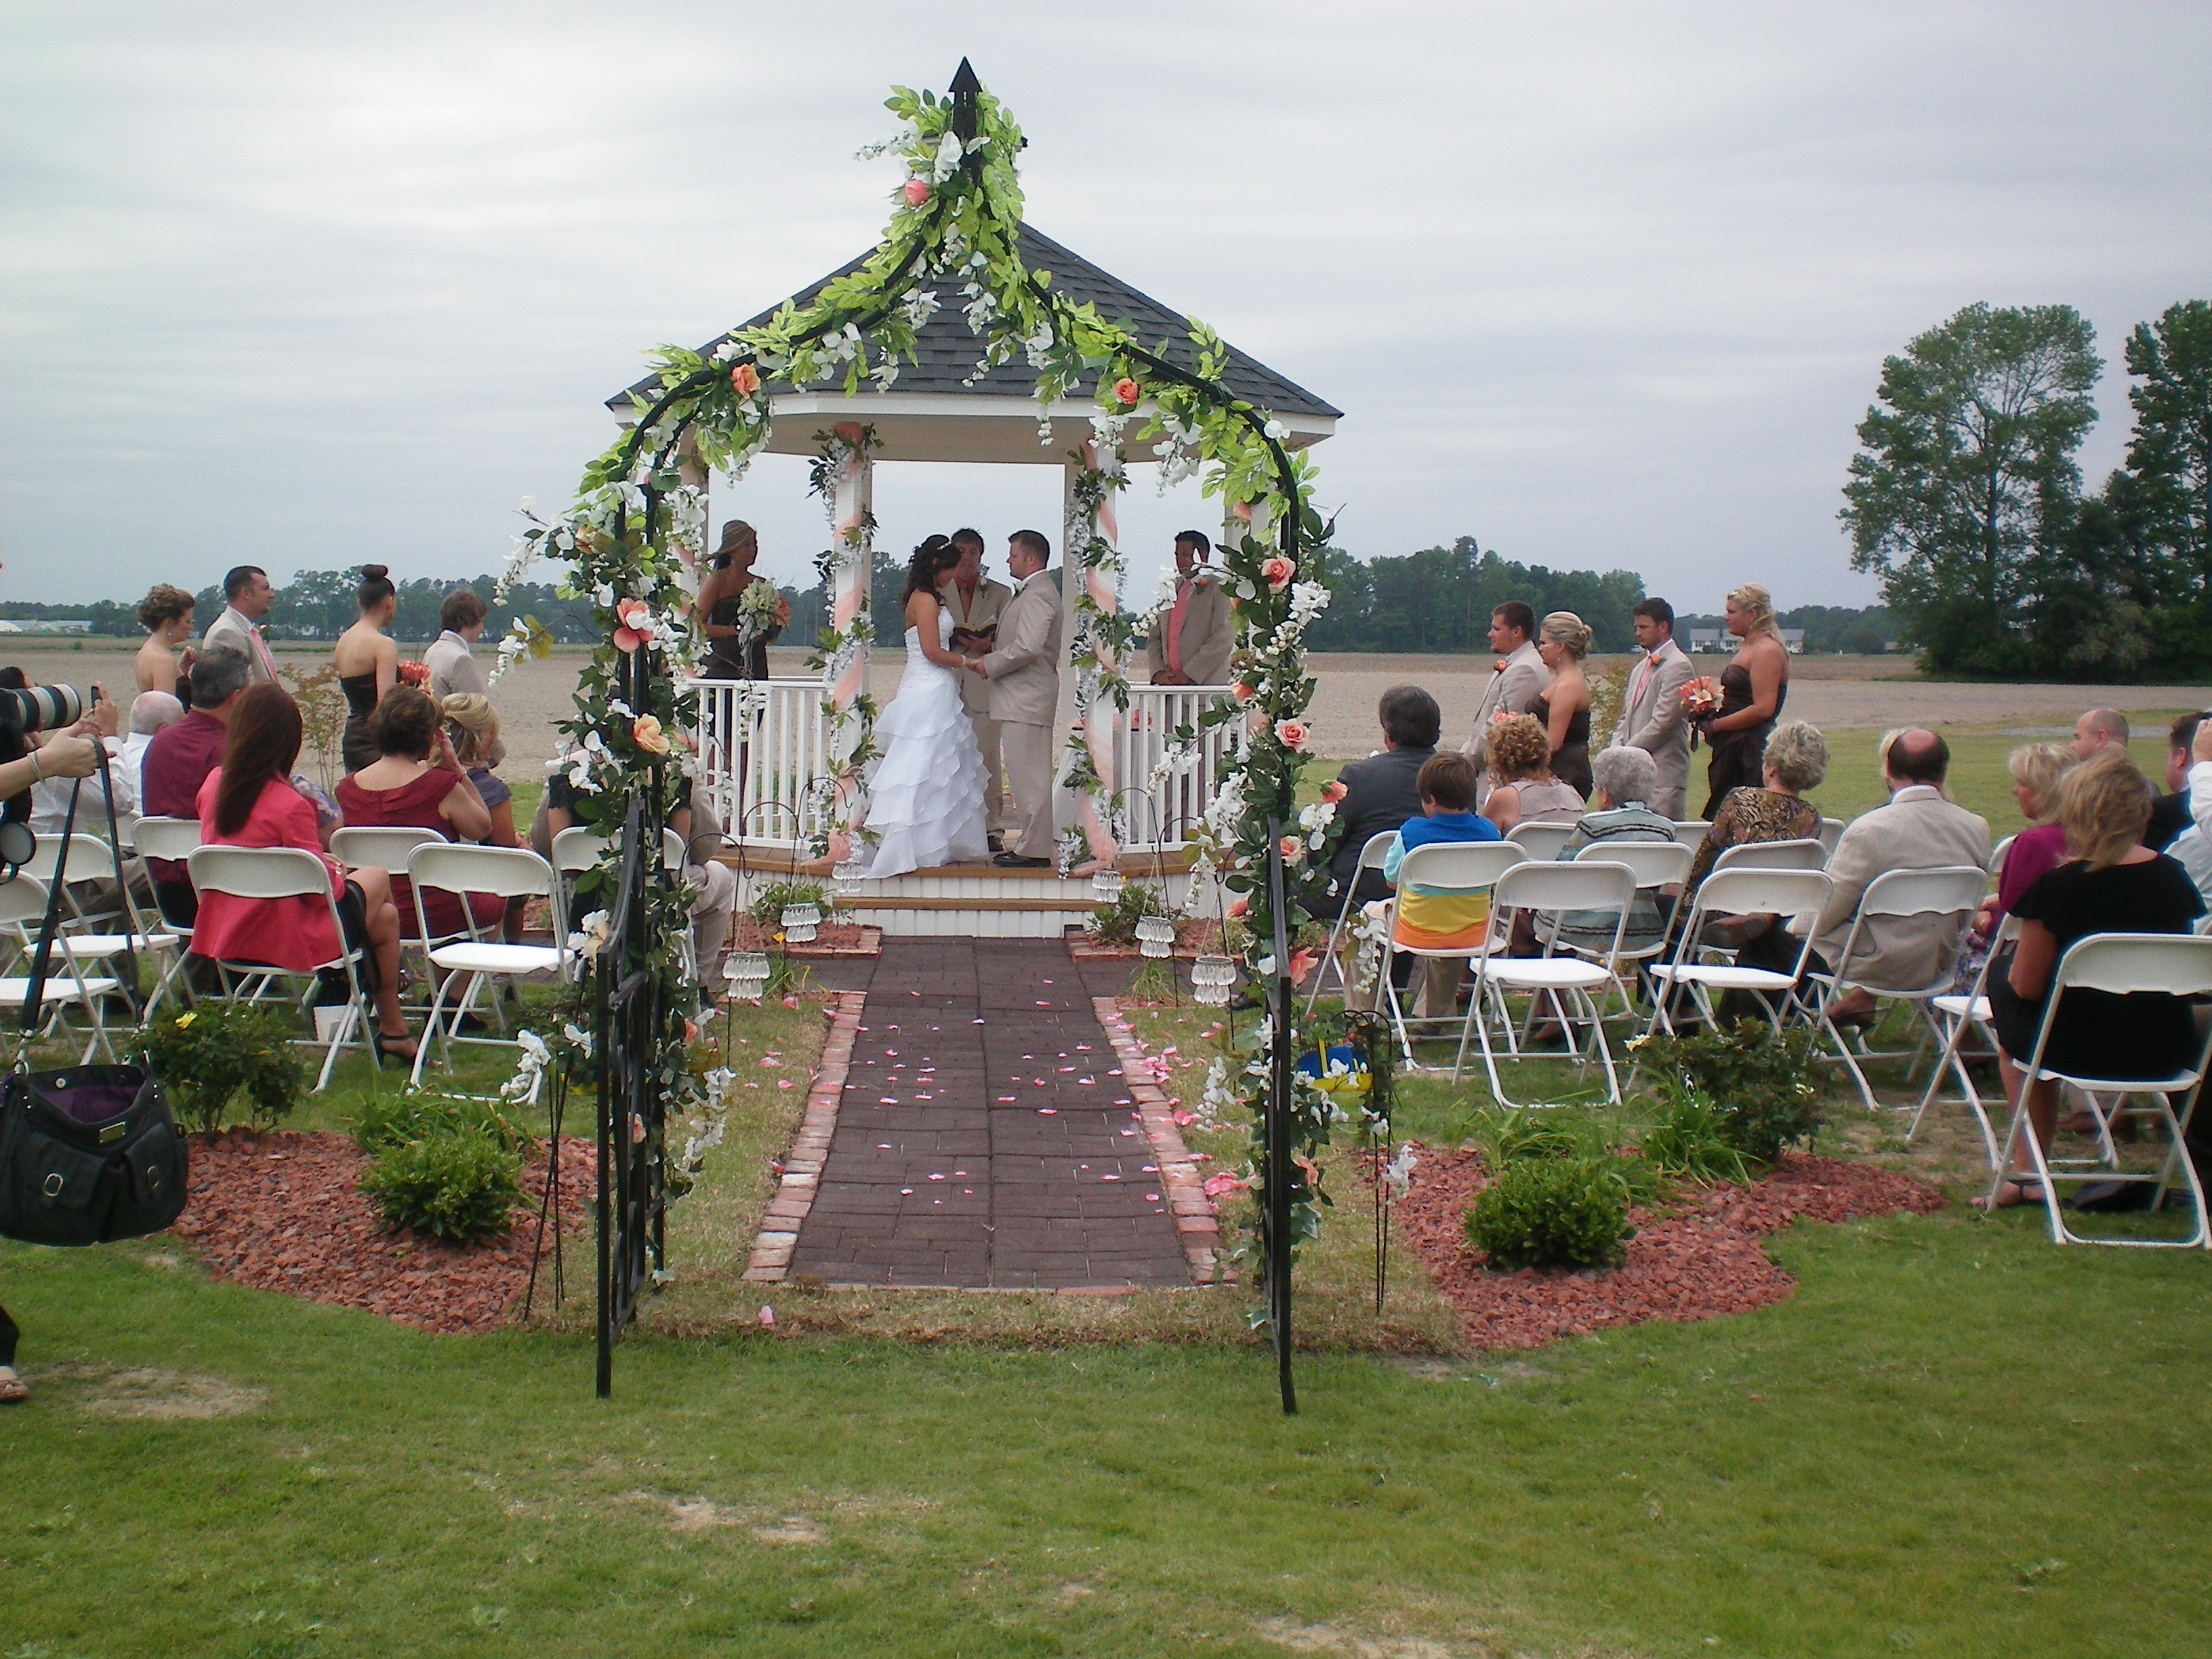 Brittany and Joseph got married in April 2012 at Hamstead Acres in LaGrange, NC